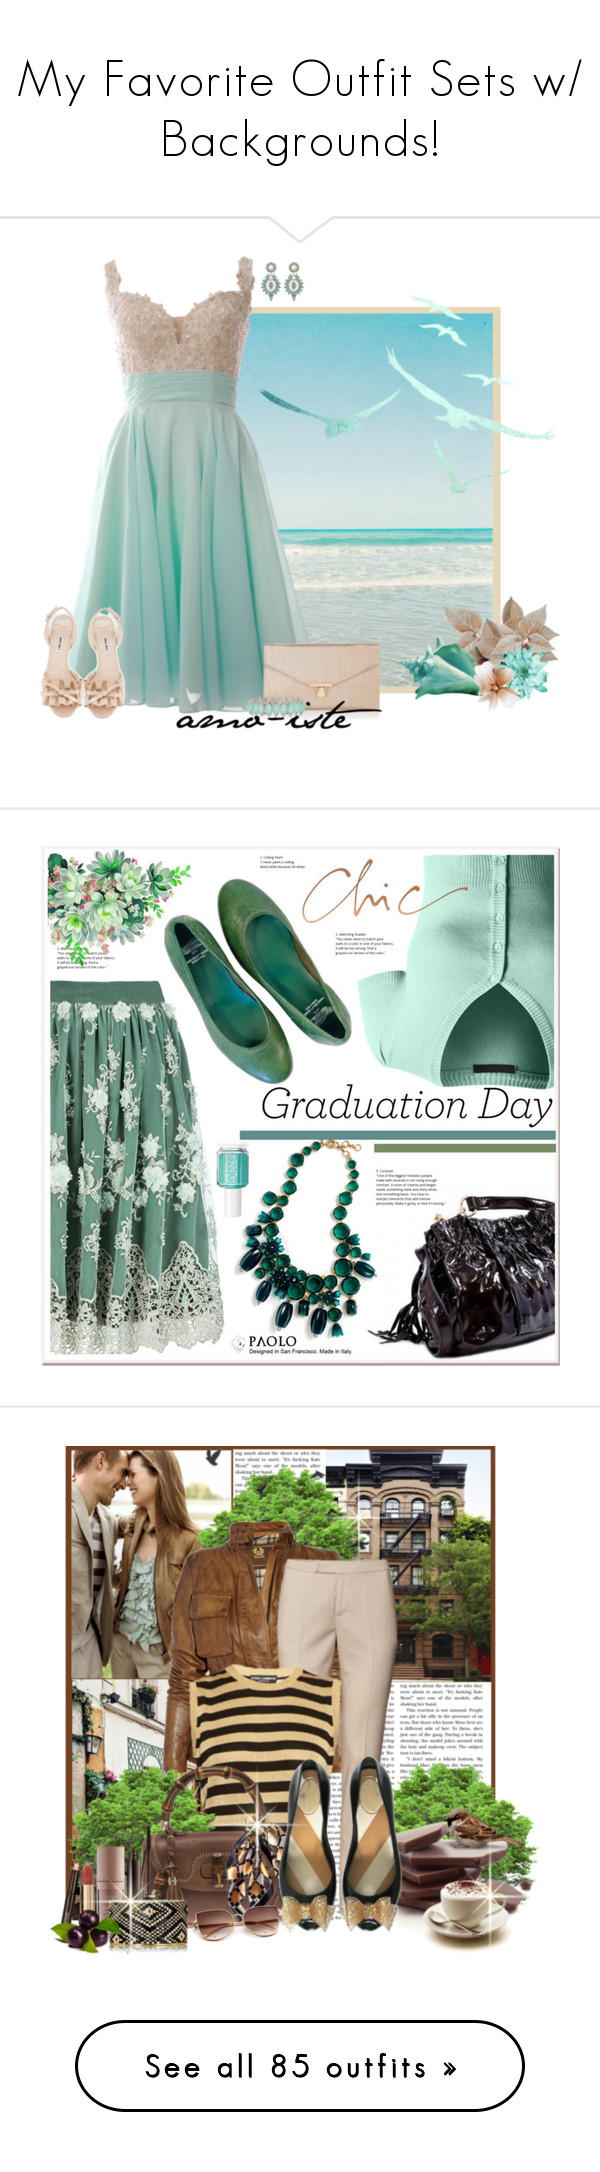 """""""My Favorite Outfit Sets w/ Backgrounds!"""" by vahrendsen1988 ❤ liked on Polyvore featuring Accessorize, Charlotte Russe, Miu Miu, Ezgi Cinar, LE3NO, J.Crew, Graduation, Banana Republic, Belstaff and H&M"""